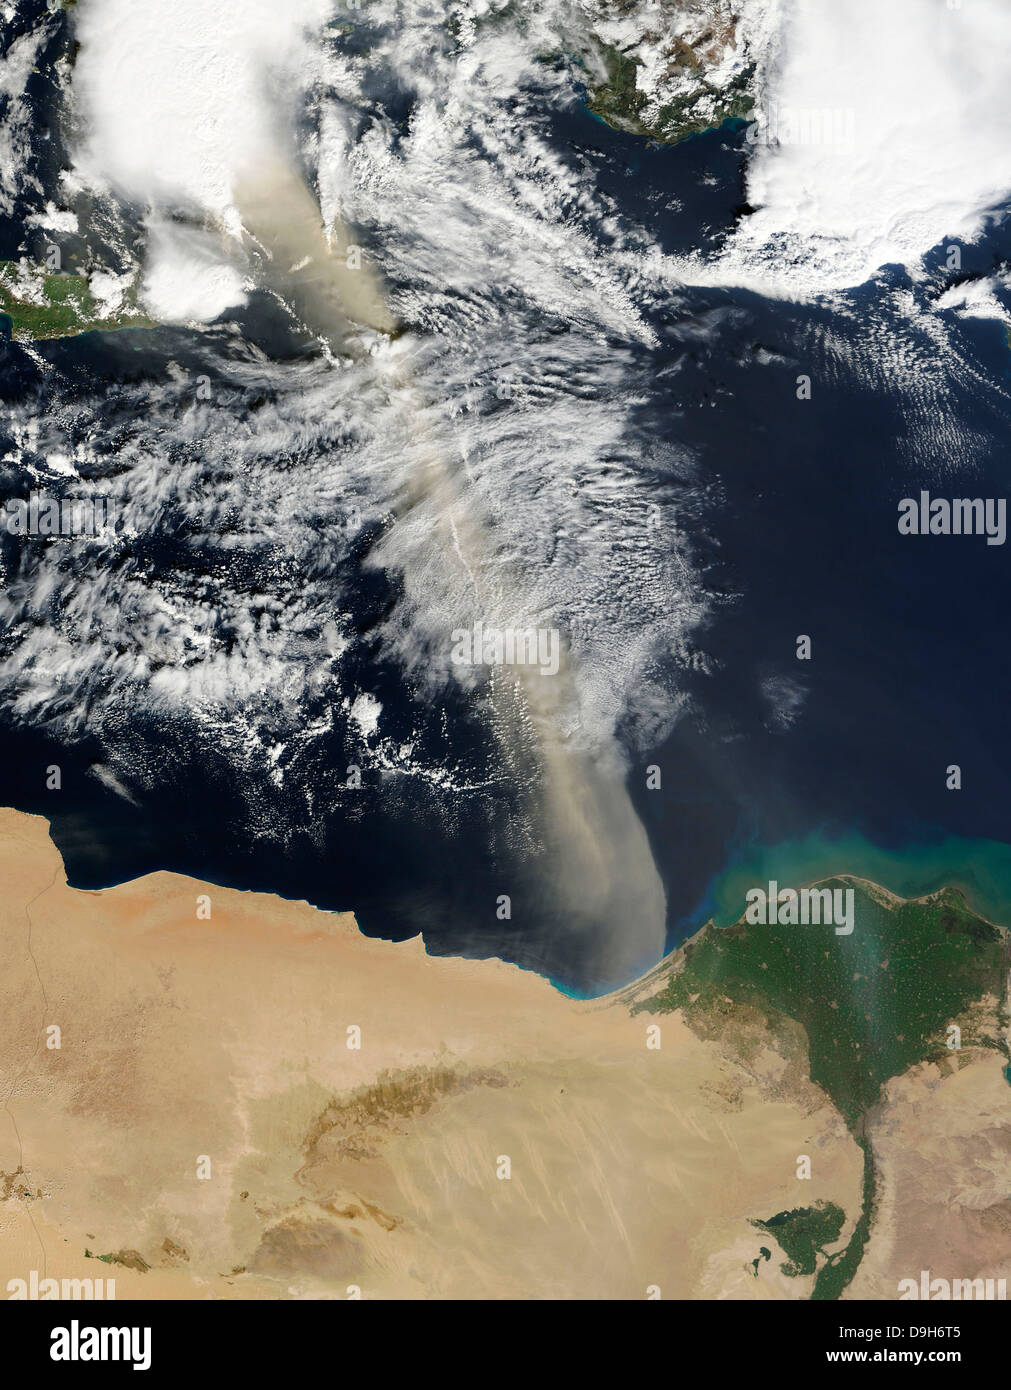 A dust plume stretches across the Mediterranean Sea. - Stock Image